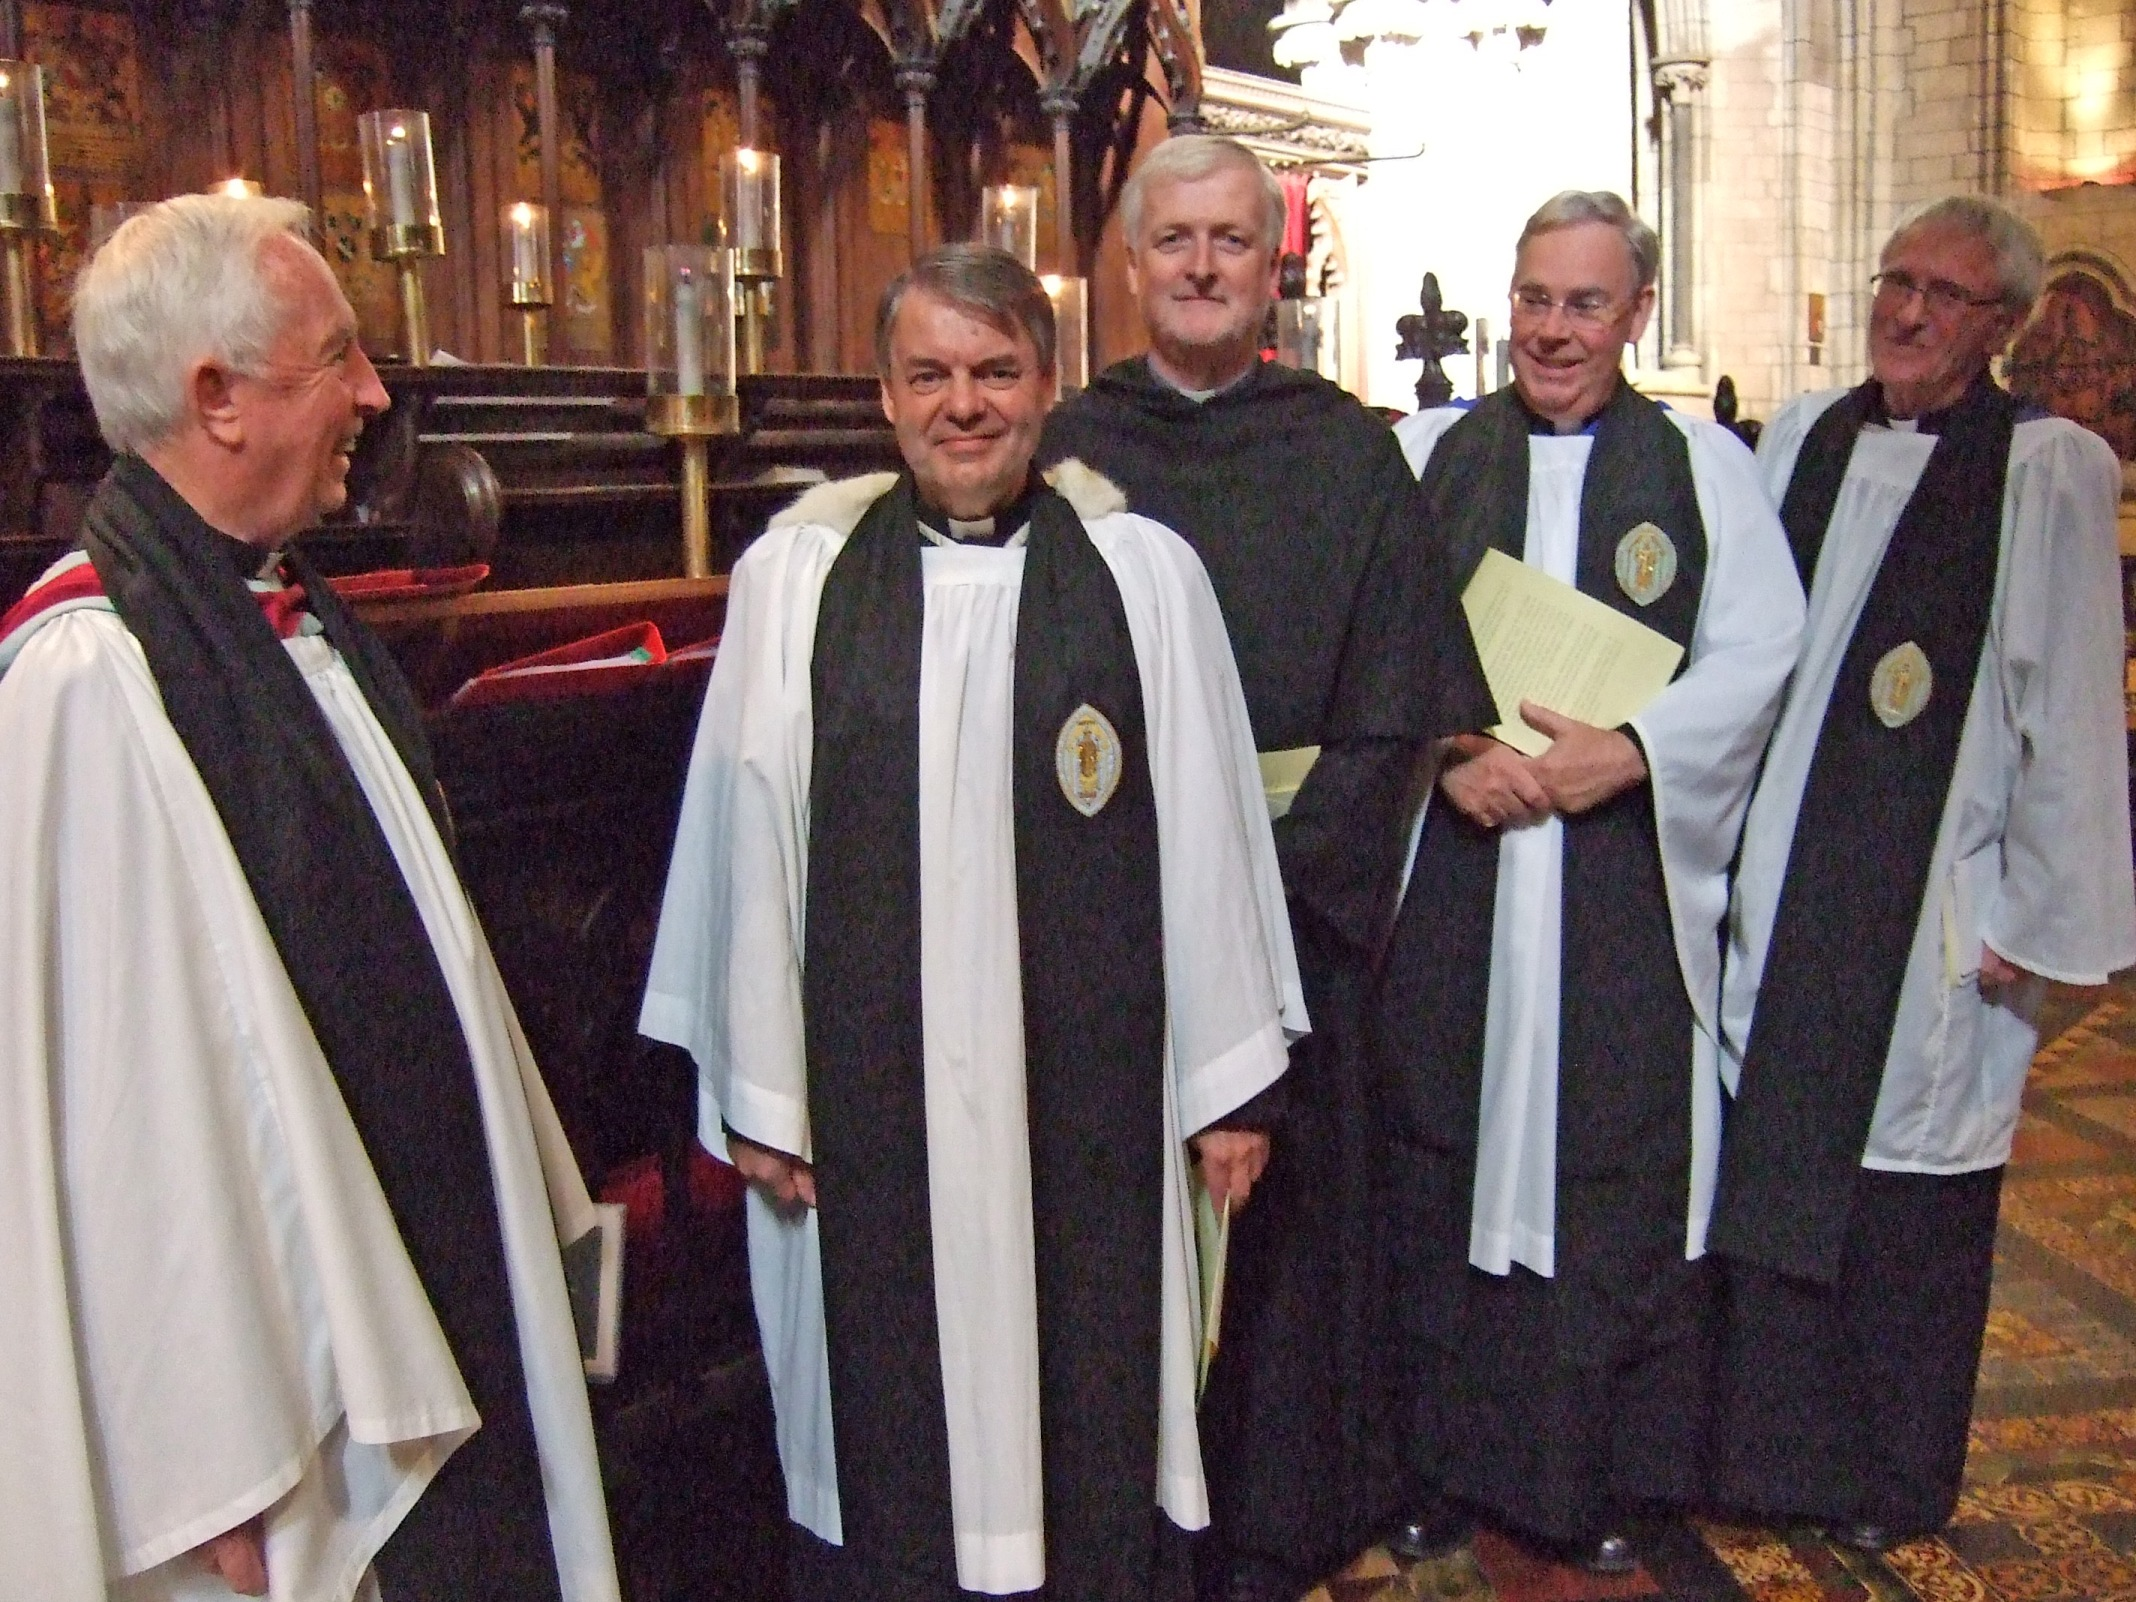 New Ecumenical Canons and Canons at St Patrick's Cathedral, Dublin